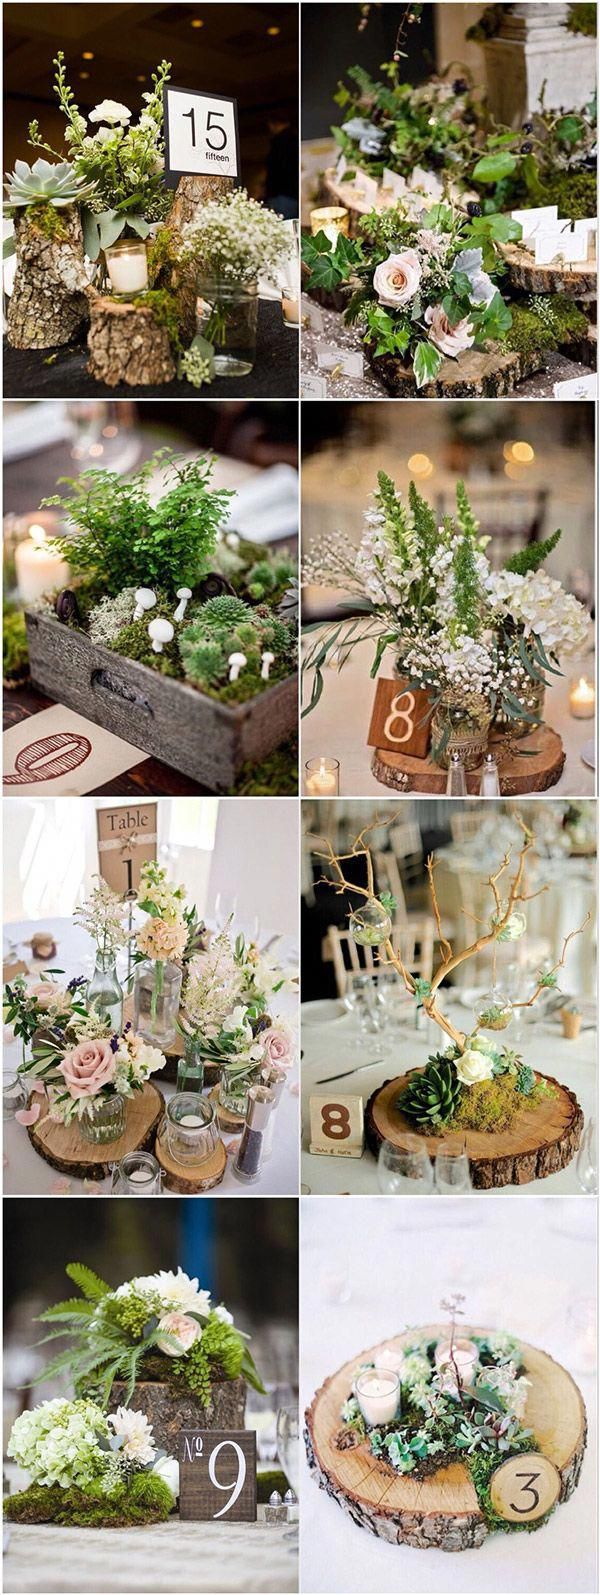 Brilliant rustic wedding ideas #rusticweddingideas